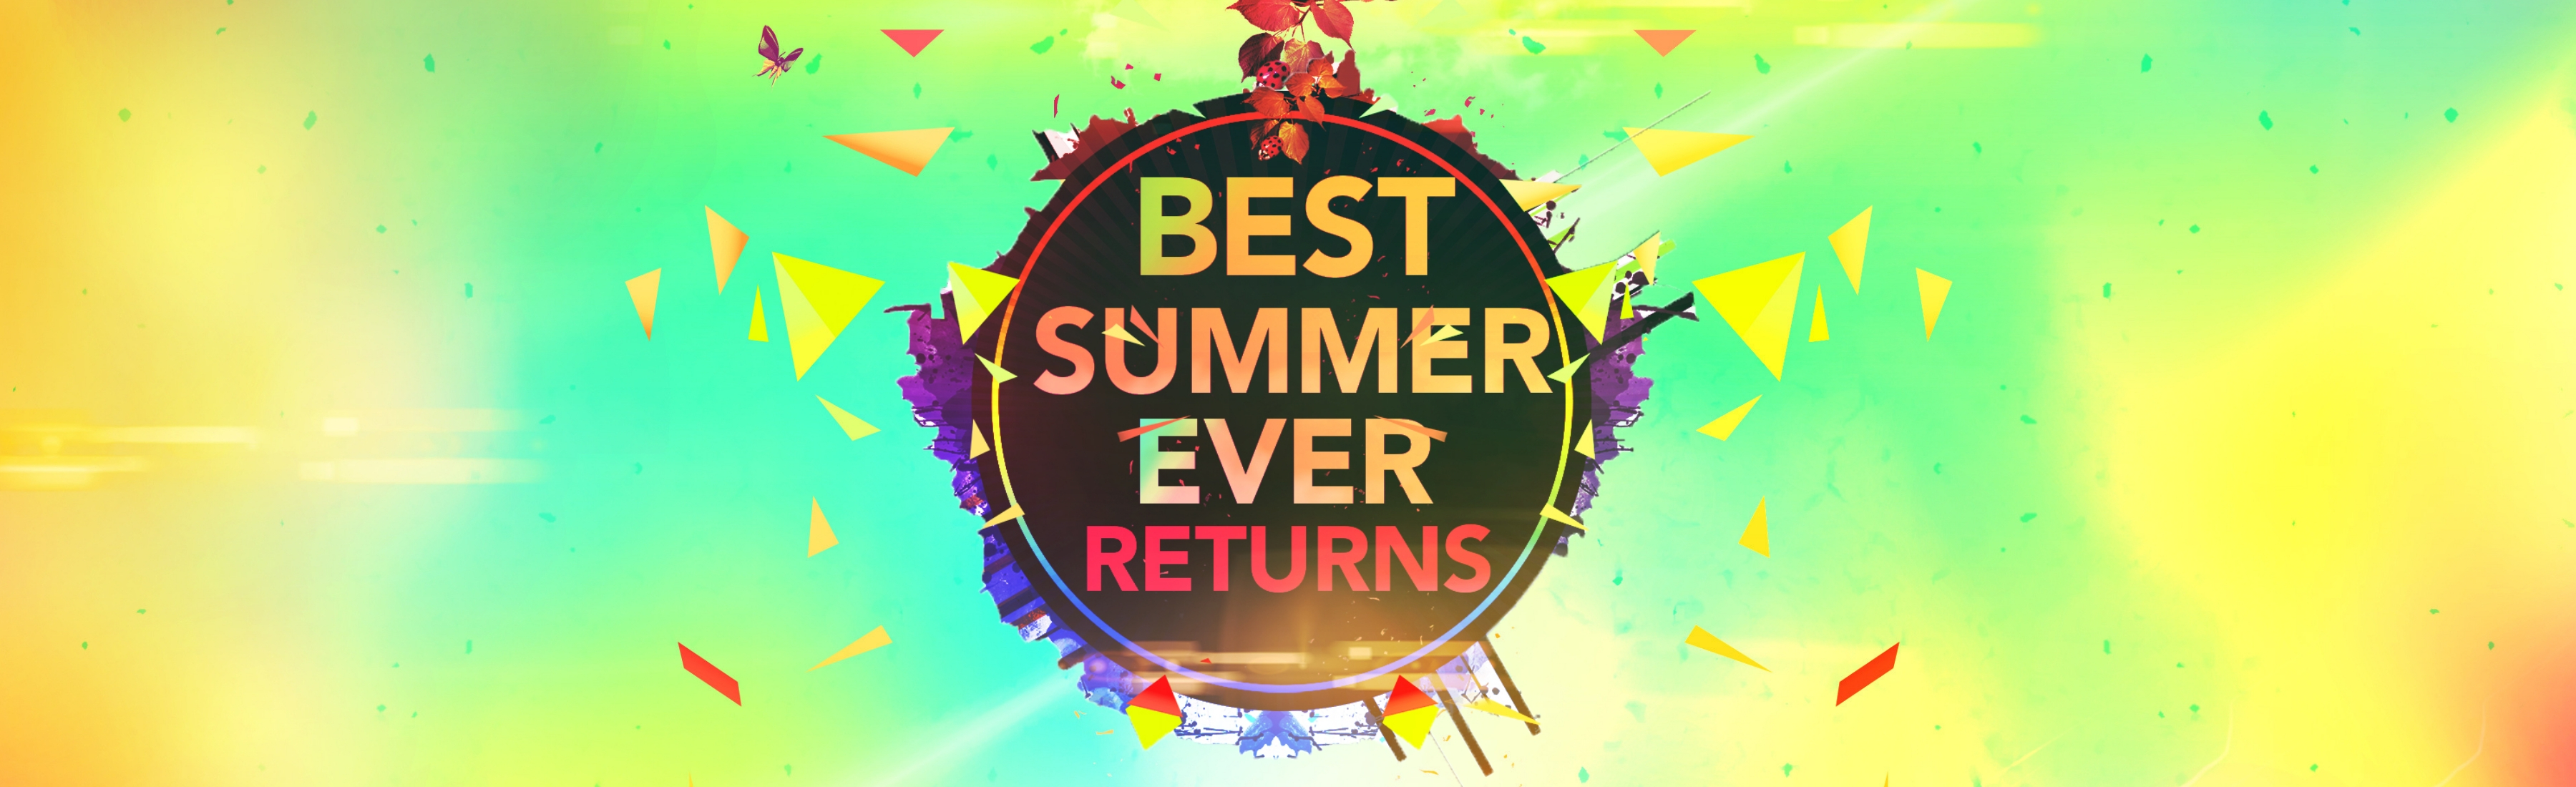 Best Summer Ever Returns 3600x1100